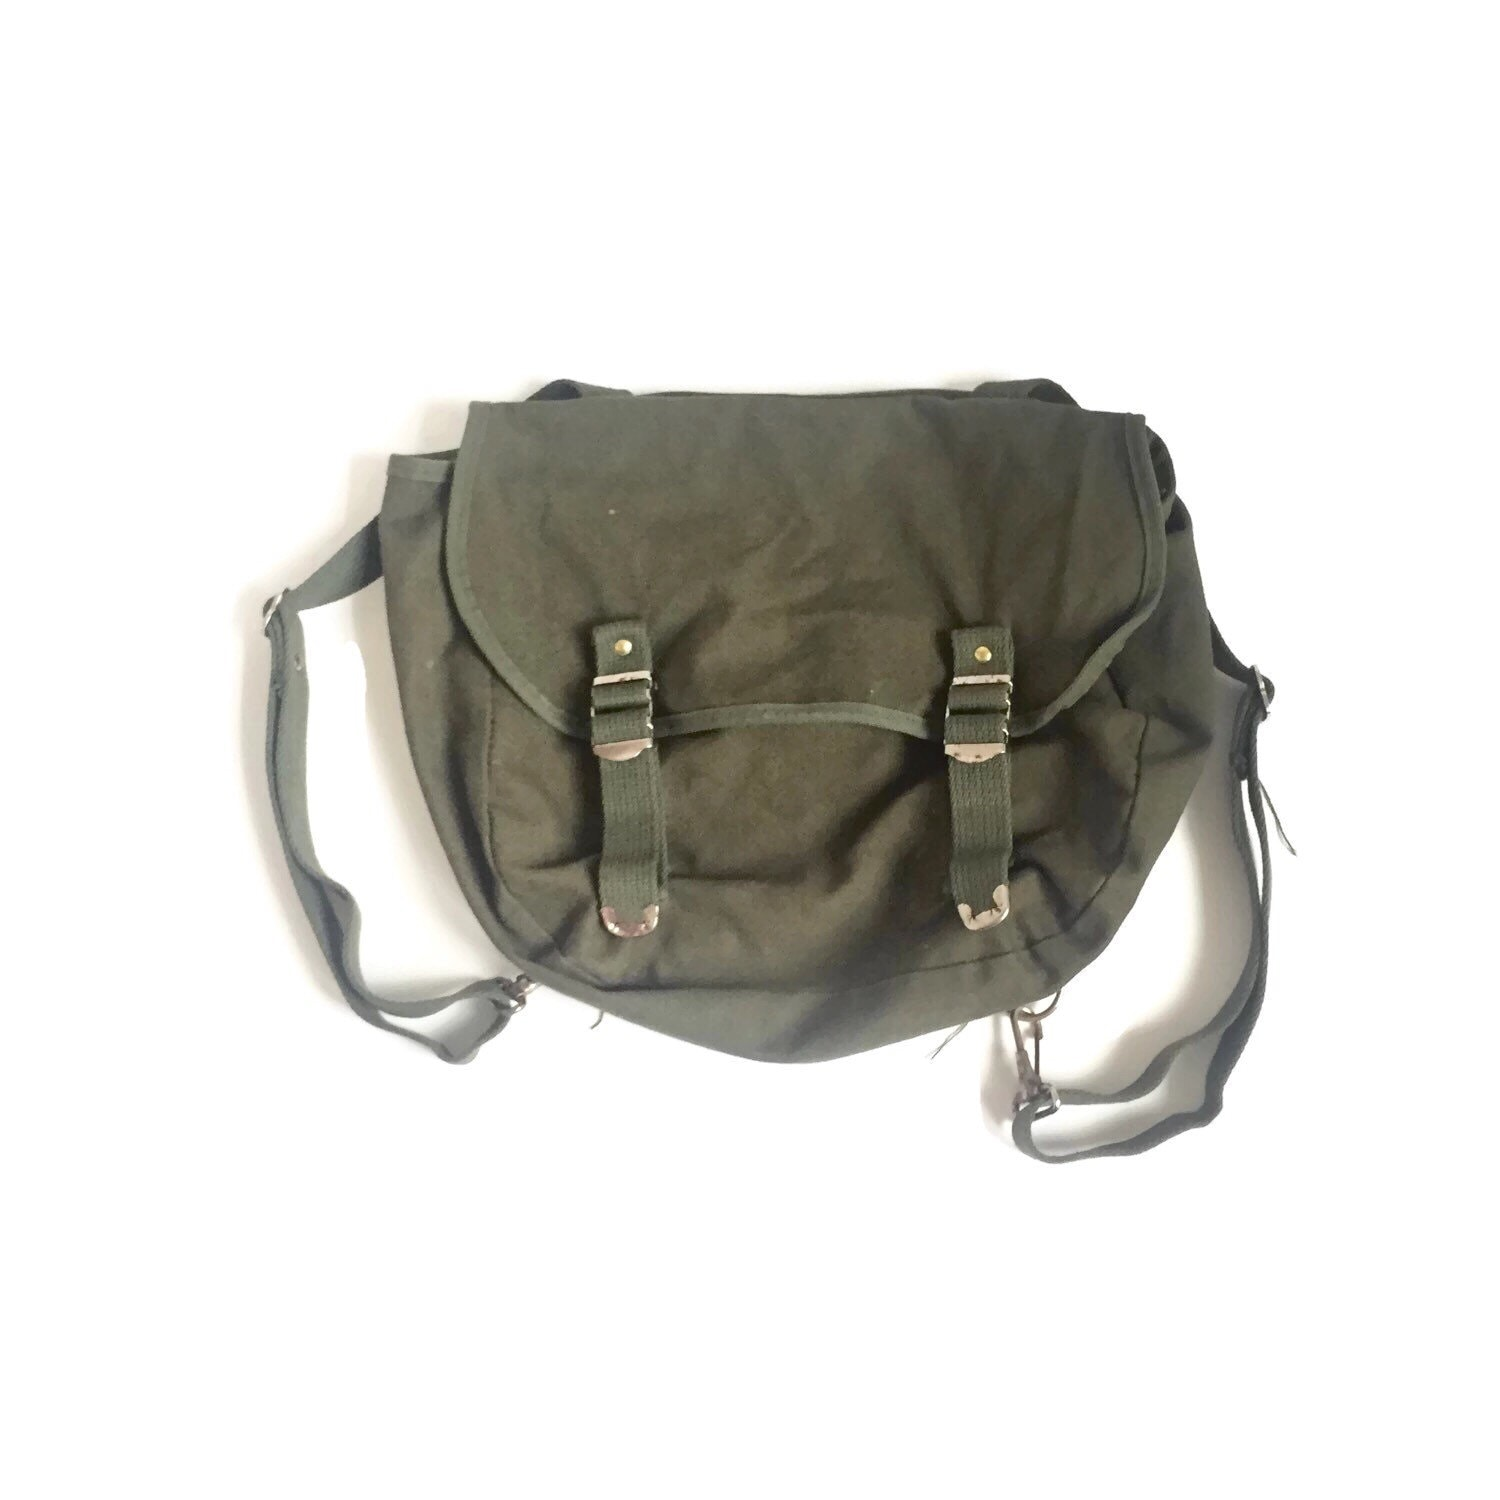 Vintage Military Small Backpack Army Green